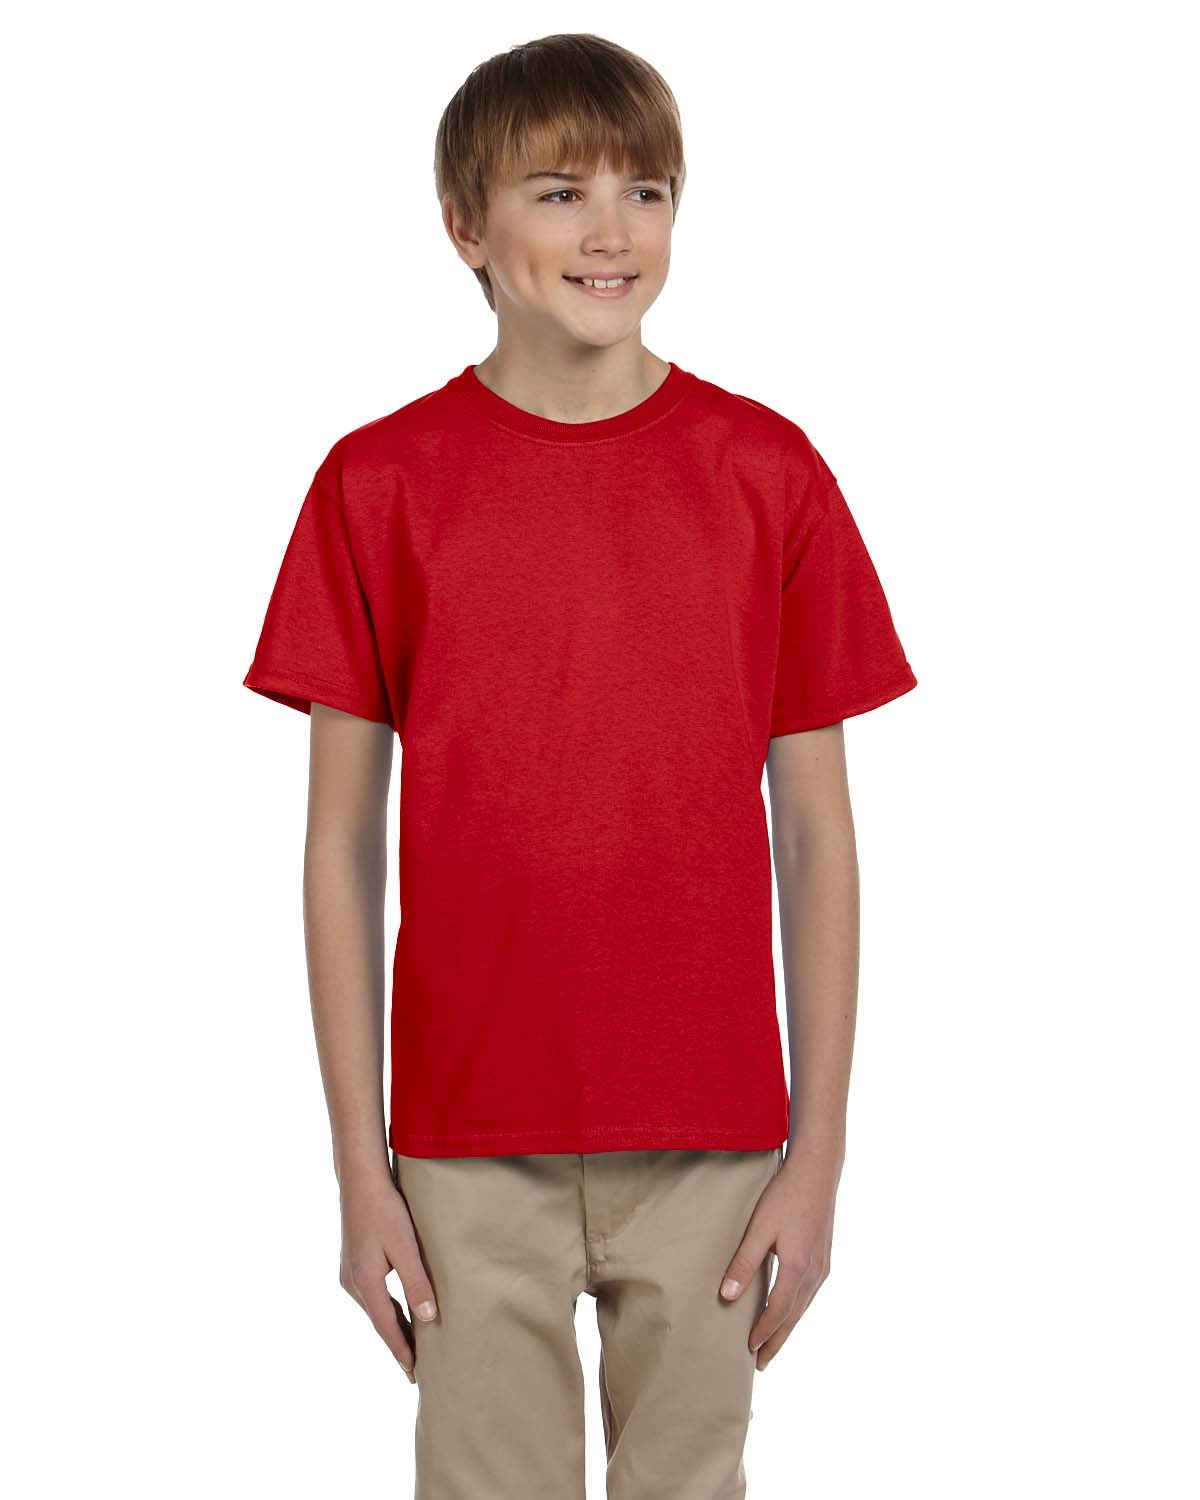 Related: red blouse red shirts for women red dress shirt red shirt men red shirt women red shirt xl red t shirt red tank top red long sleeve shirt red shirts for men Include description Categories.